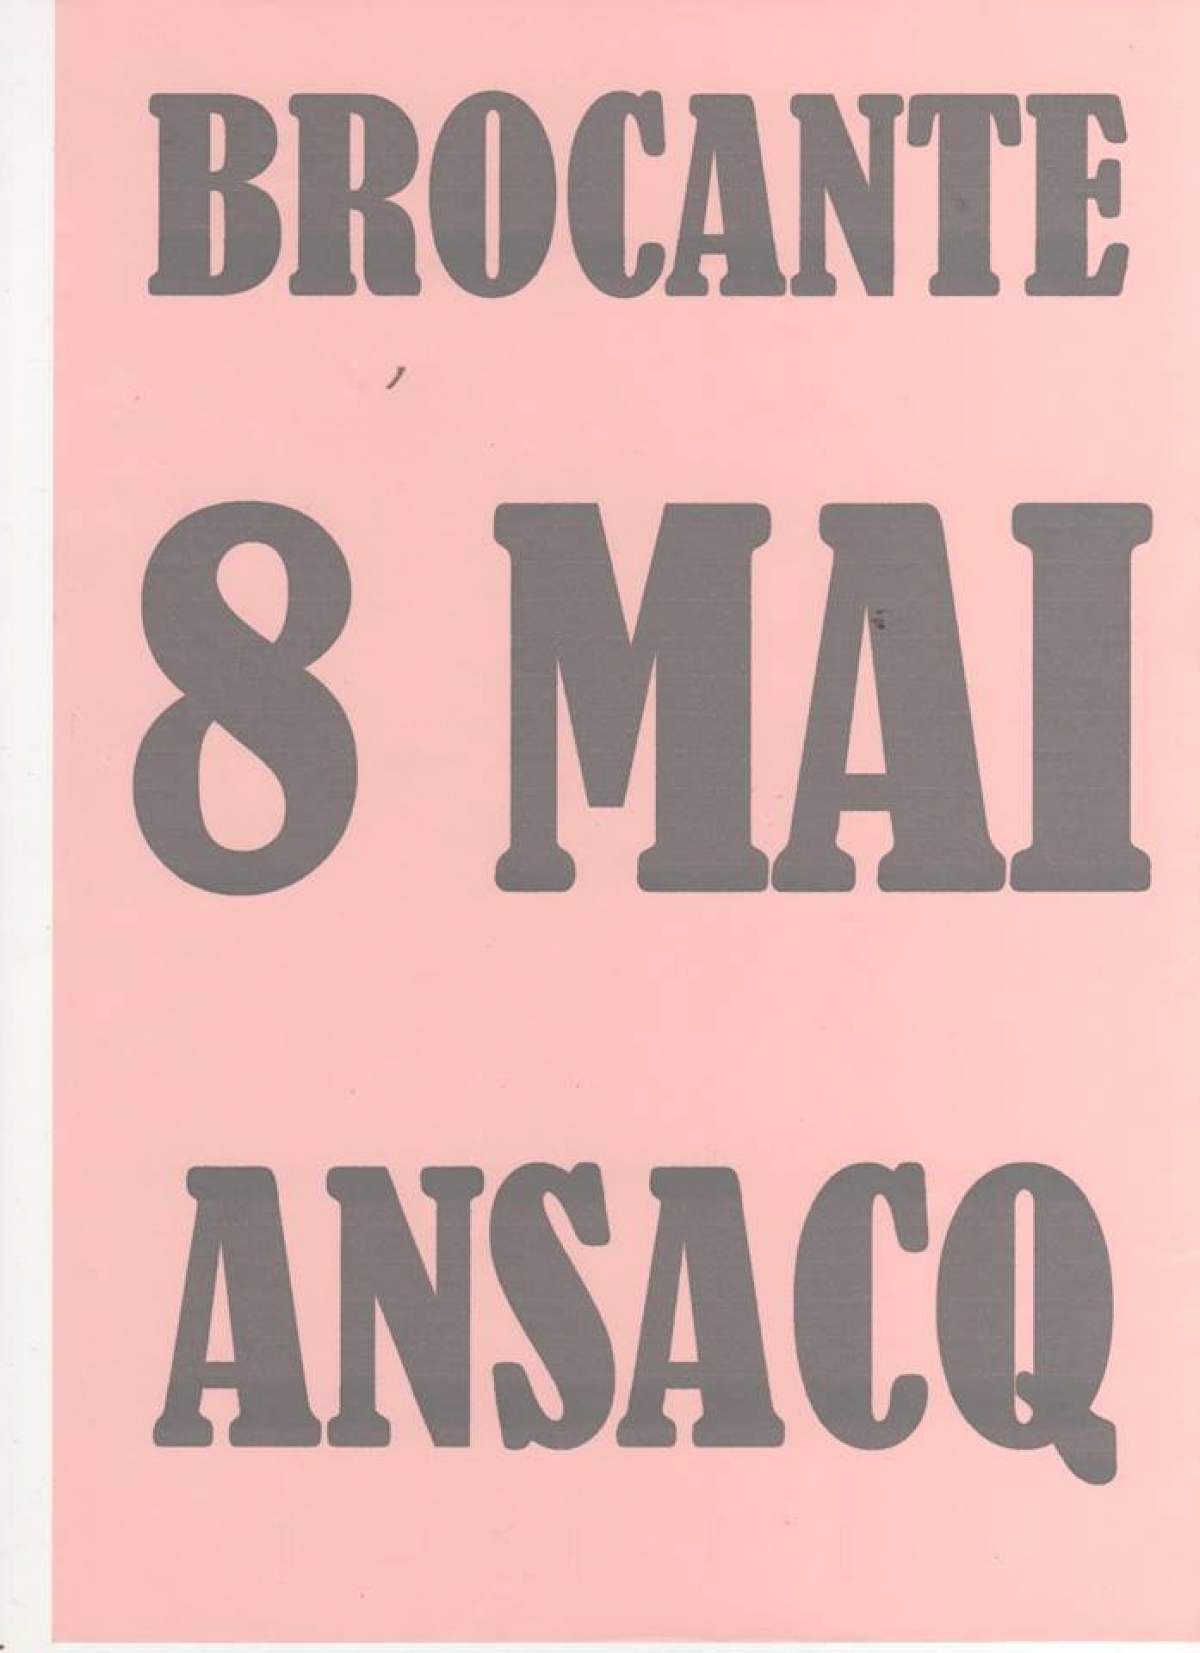 brocante d 39 ansacq le 8 mai l 39 agenda sorties evasion evasion. Black Bedroom Furniture Sets. Home Design Ideas